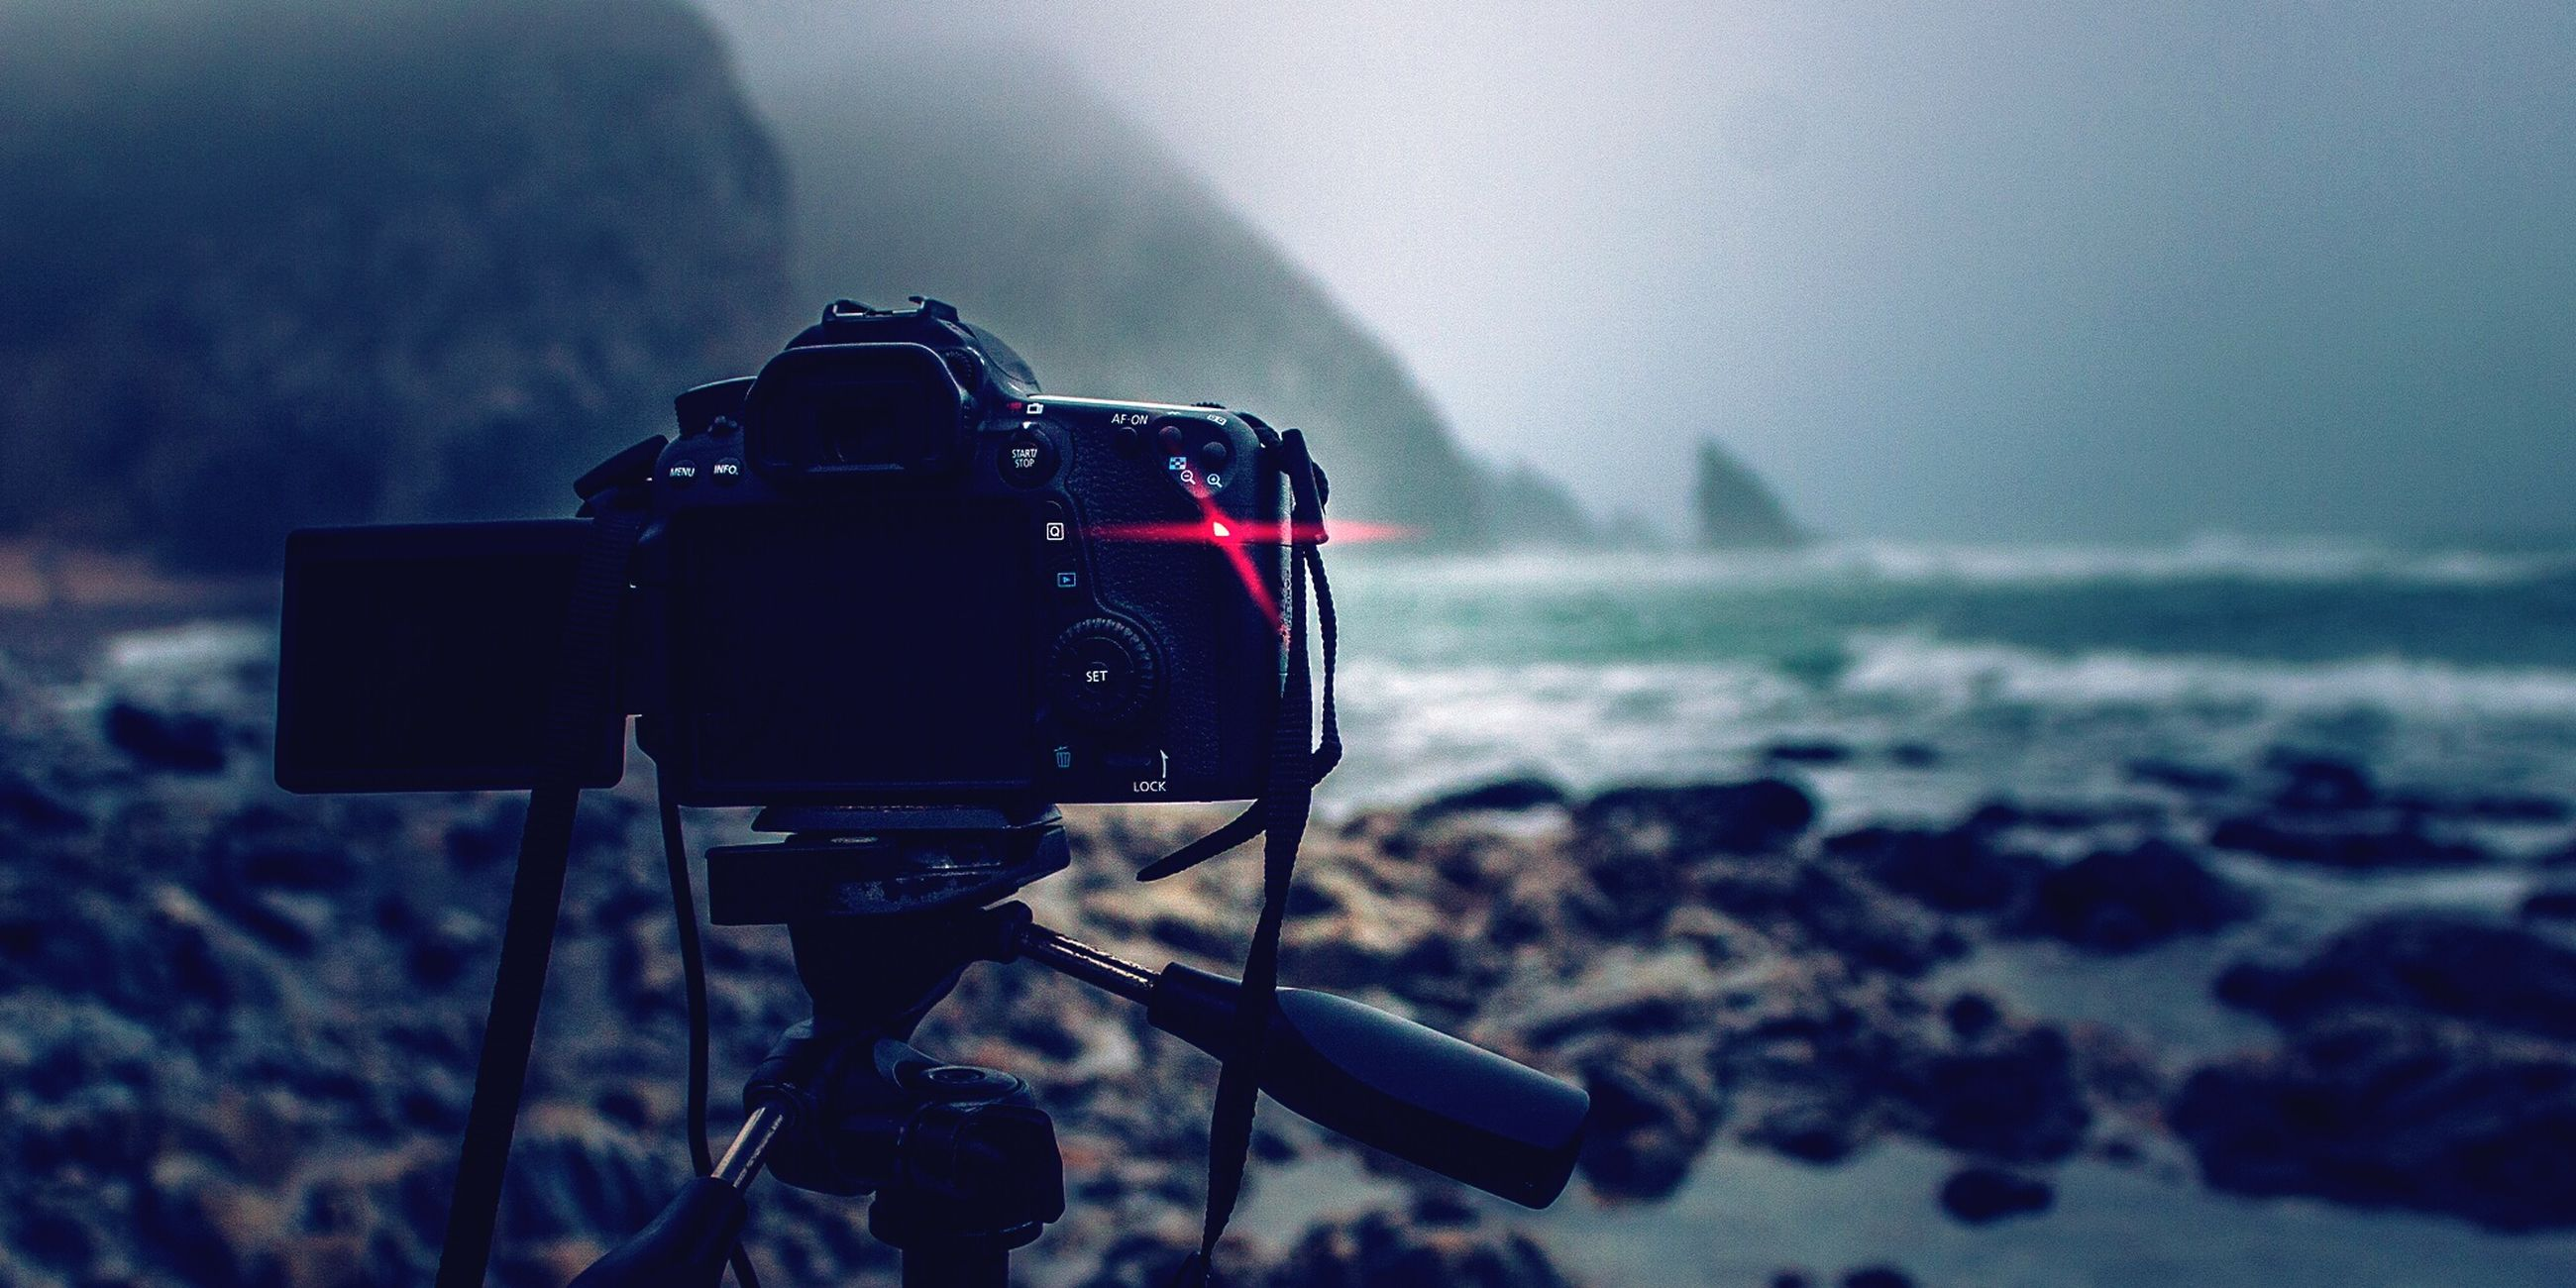 focus on foreground, transportation, mode of transport, sky, close-up, selective focus, nature, photography themes, sea, technology, outdoors, travel, beauty in nature, tranquility, camera - photographic equipment, nautical vessel, day, water, landscape, weather